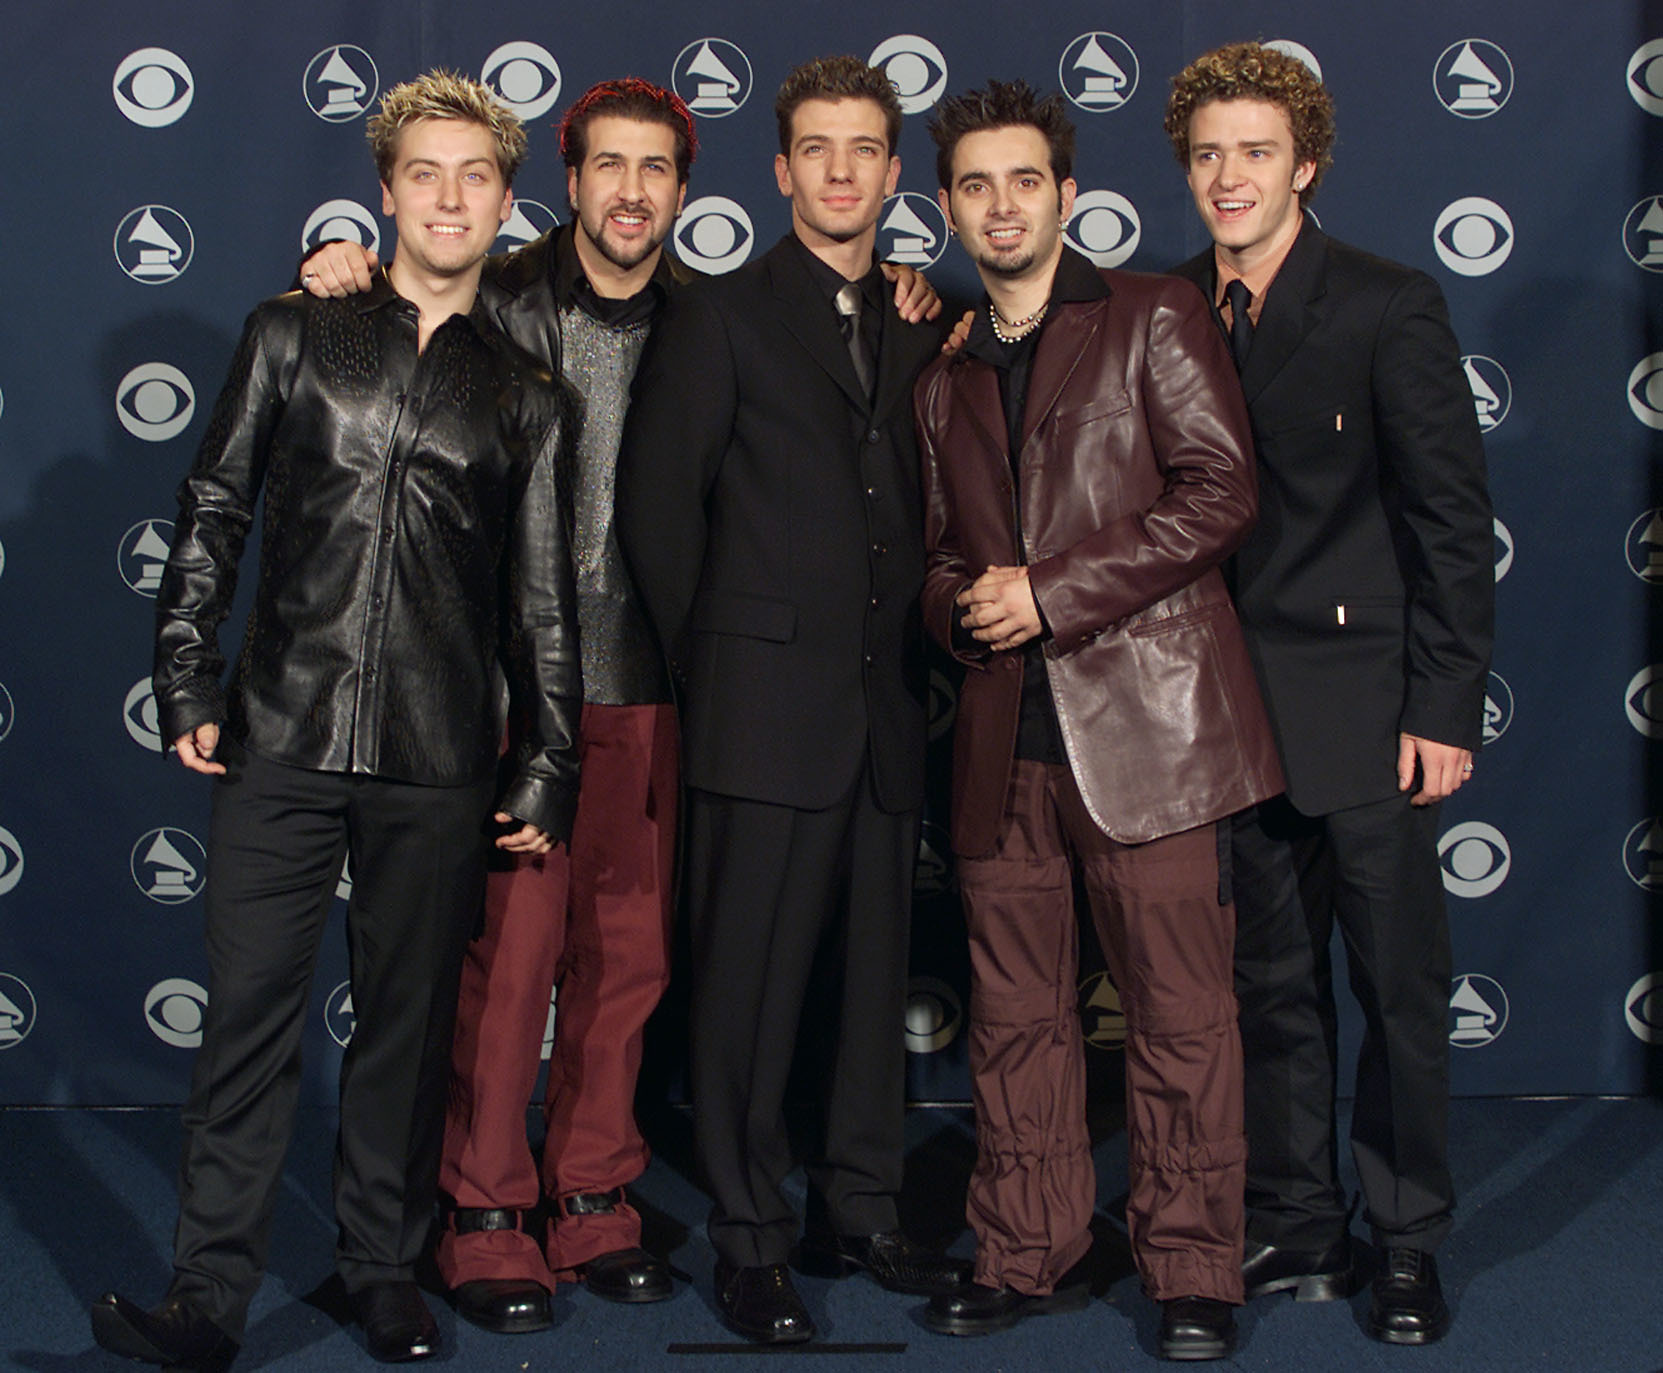 Lance Bass, Joey Fatone, JC Chasez, Chris Kirkpatrick and Justin Timberlake of *NSYNC attend the 42nd Annual Grammy Awards in Los Angeles on Feb. 23, 2000.